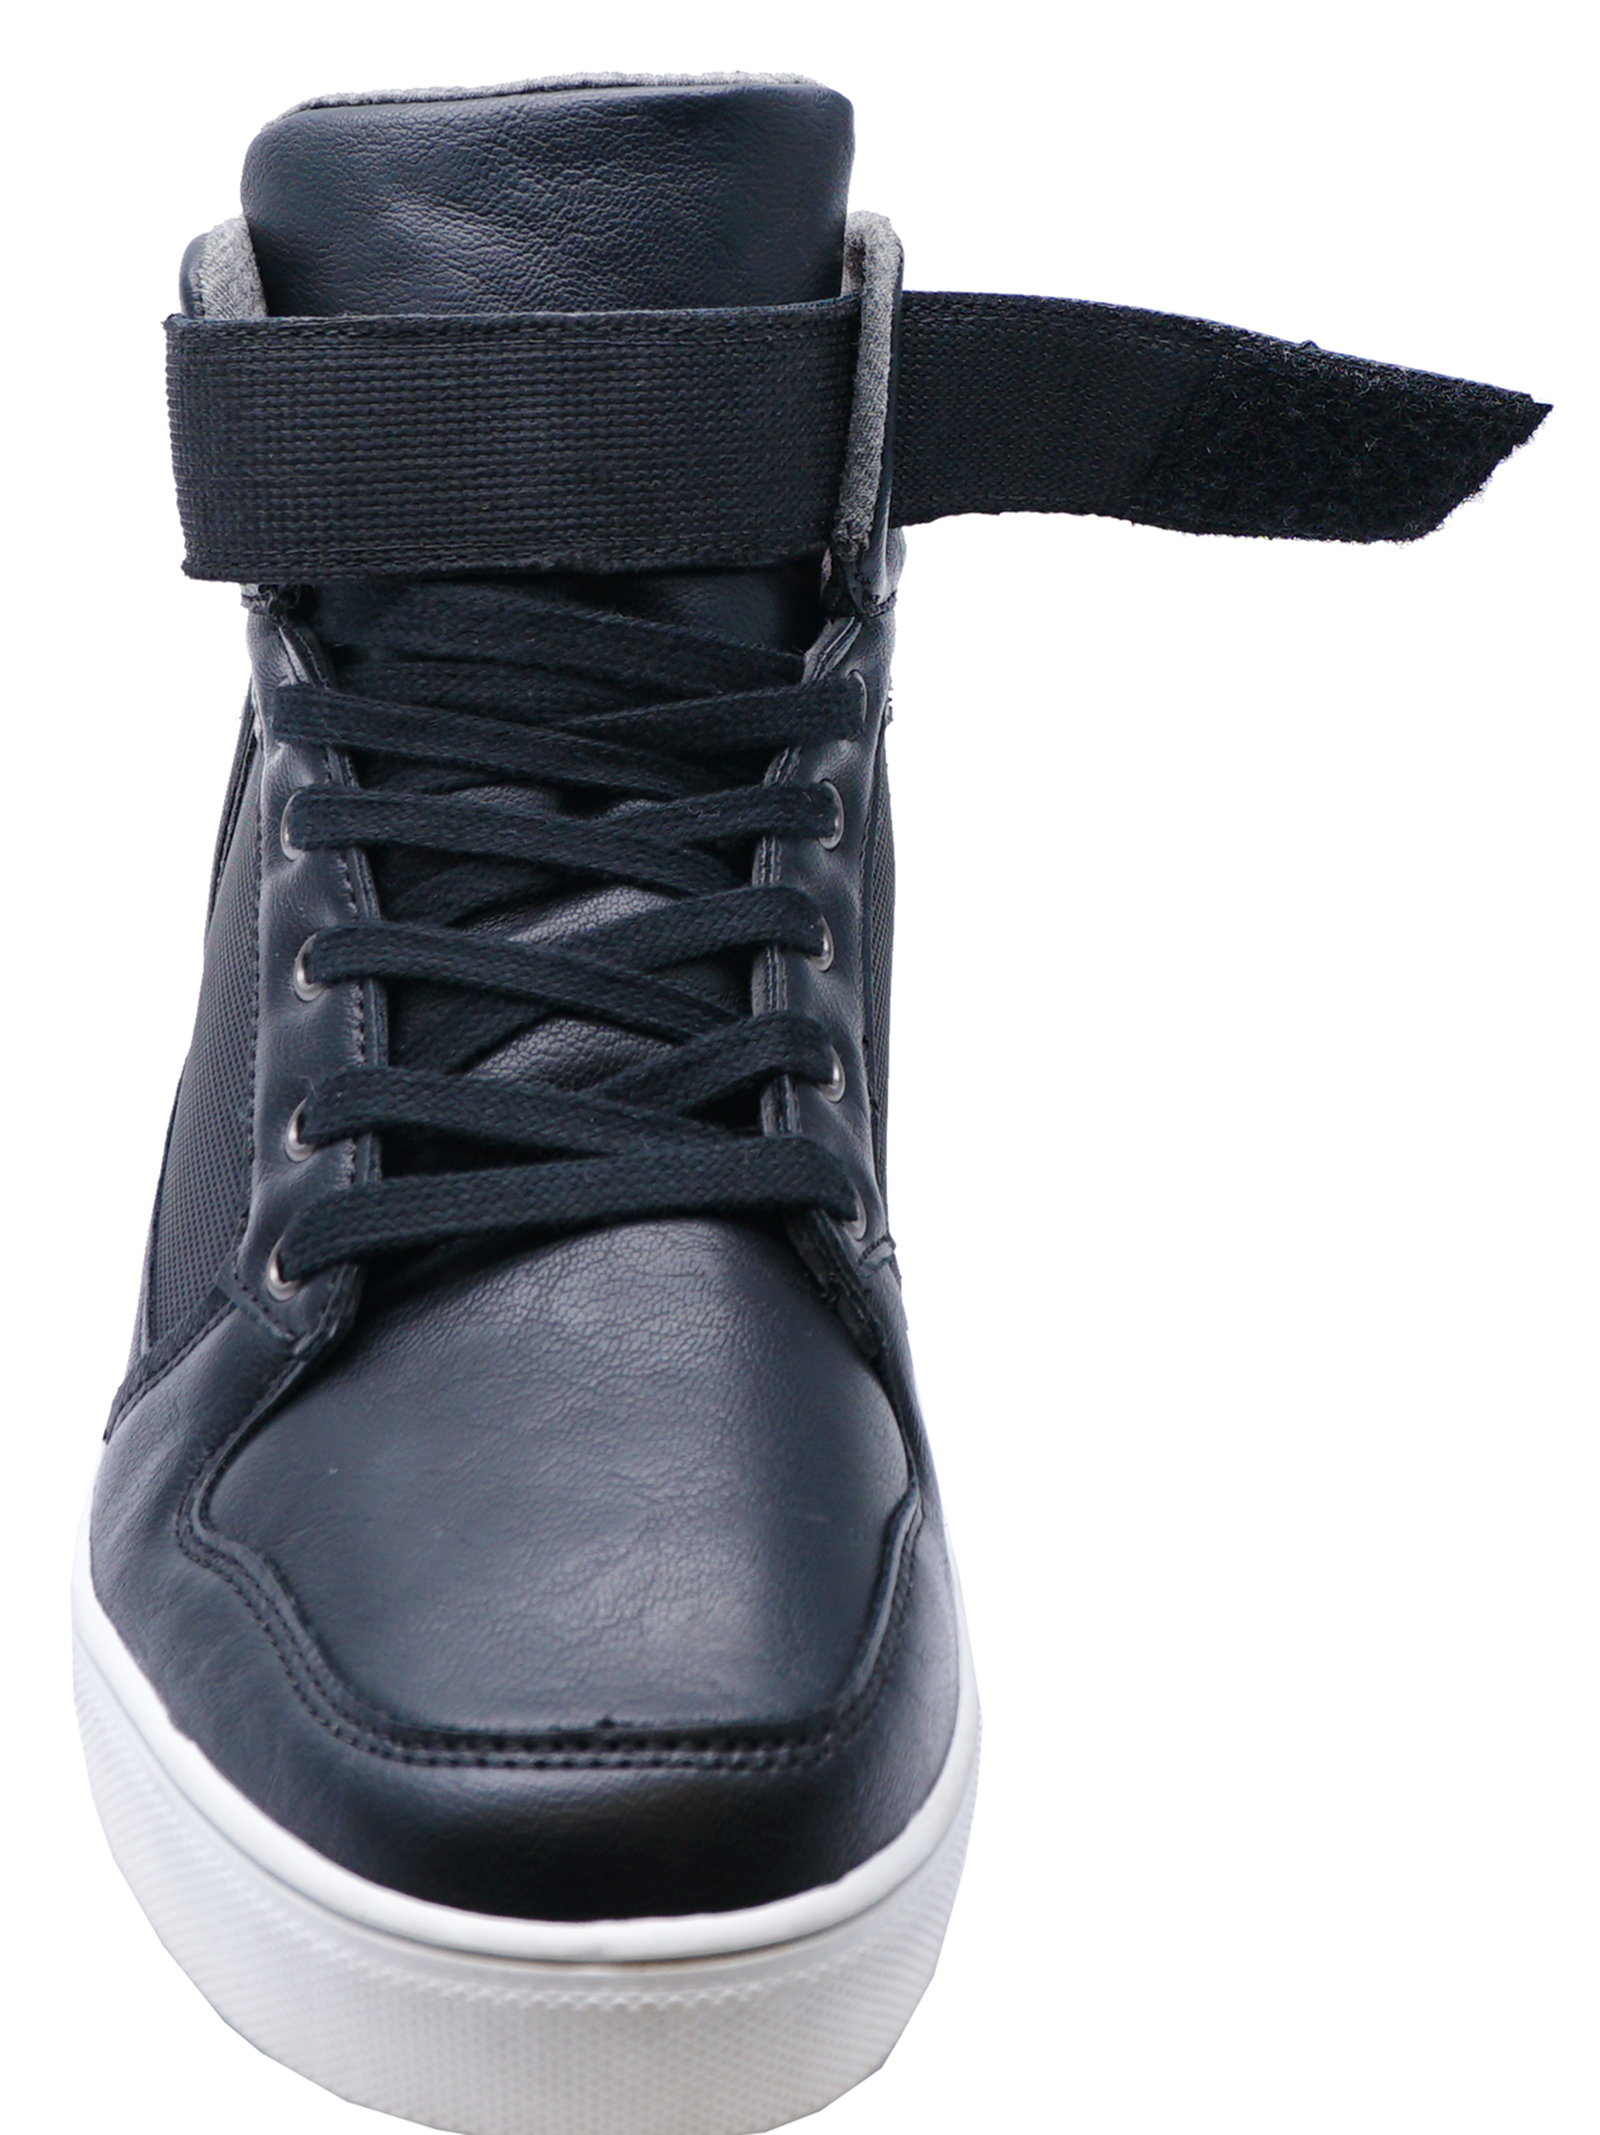 MENS-SMART-BLACK-LACE-UP-TRAINER-COMFY-SMART-CASUAL-BOOTS-SHOES-PUMPS-SIZES-6-12 thumbnail 8